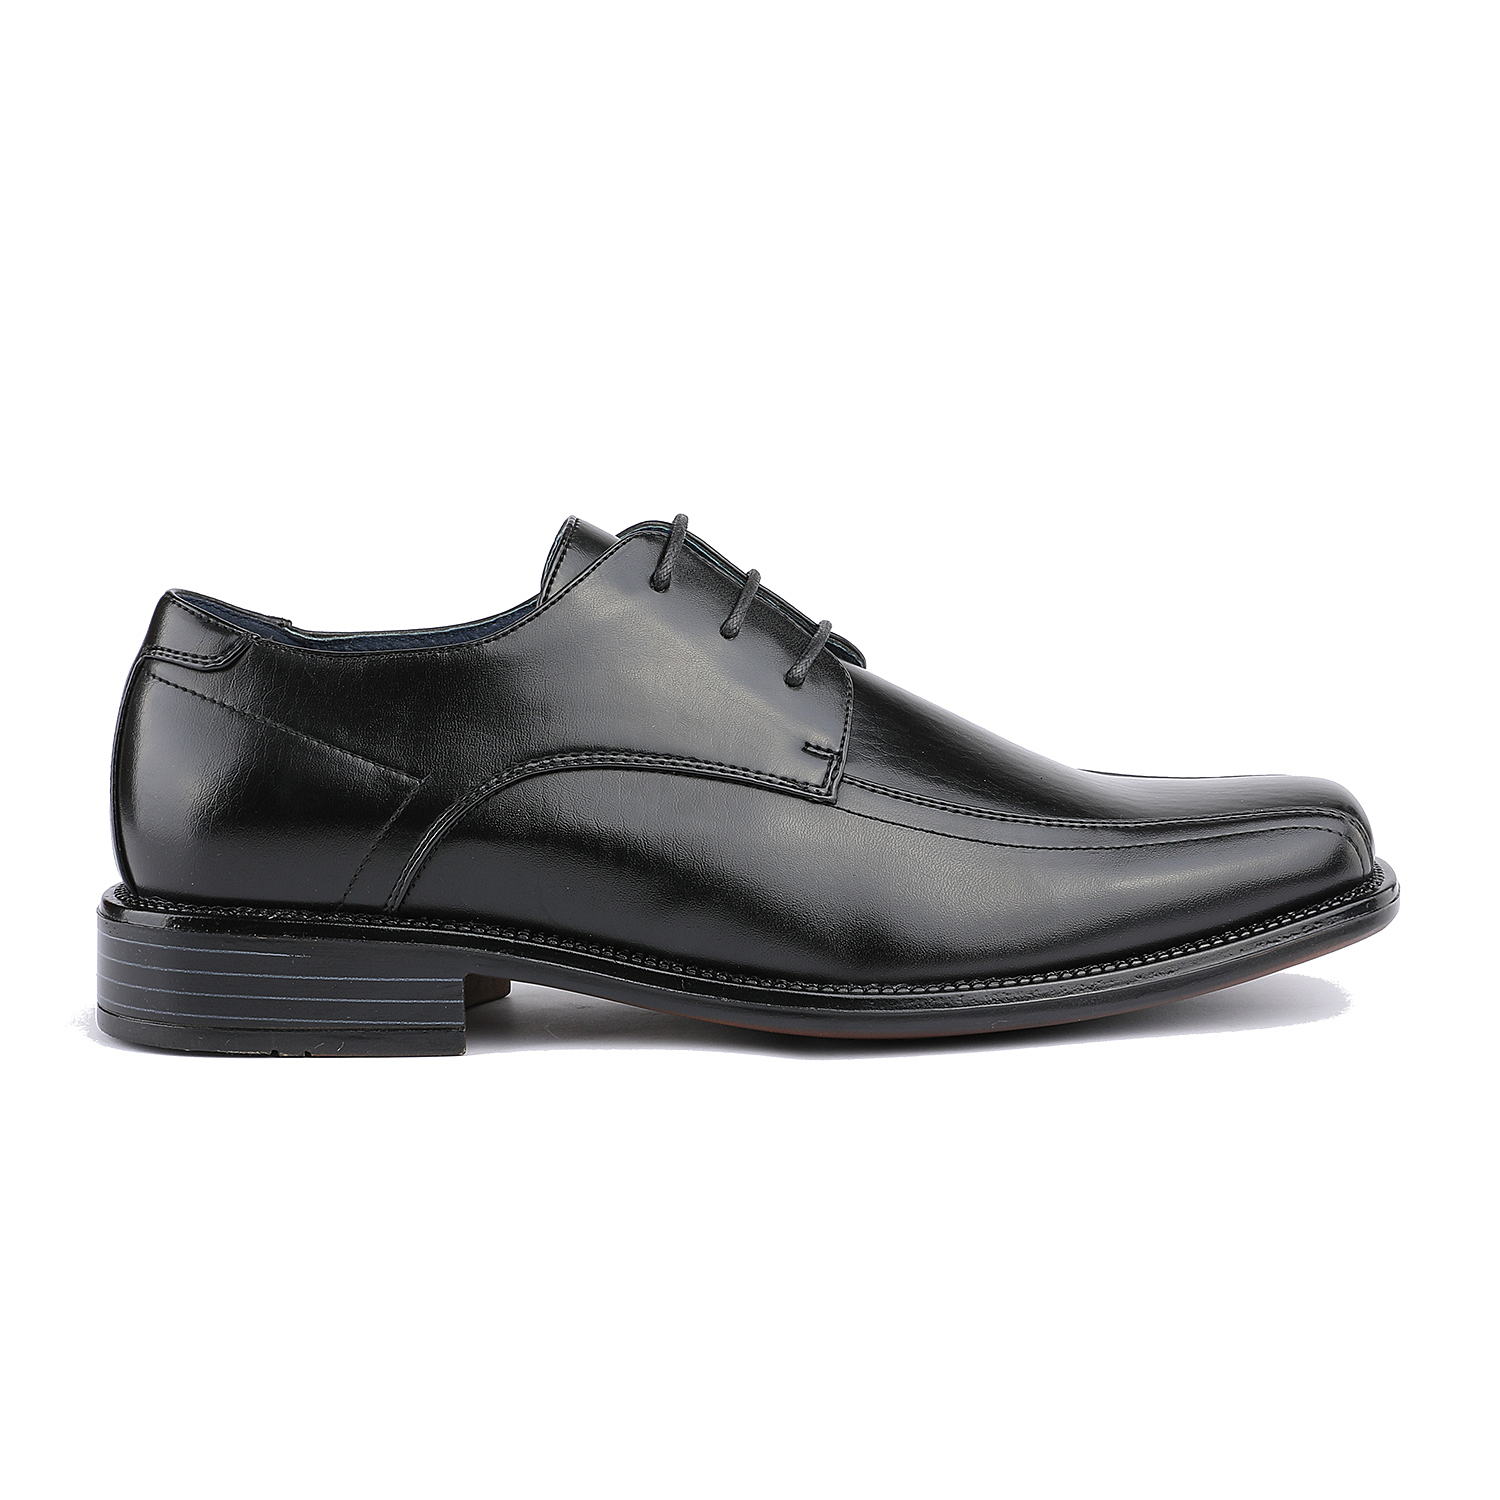 BRUNO-MARC-Men-STATE-Formal-Square-Toe-Leather-Lined-Slip-On-Dress-Loafers-Shoes thumbnail 21